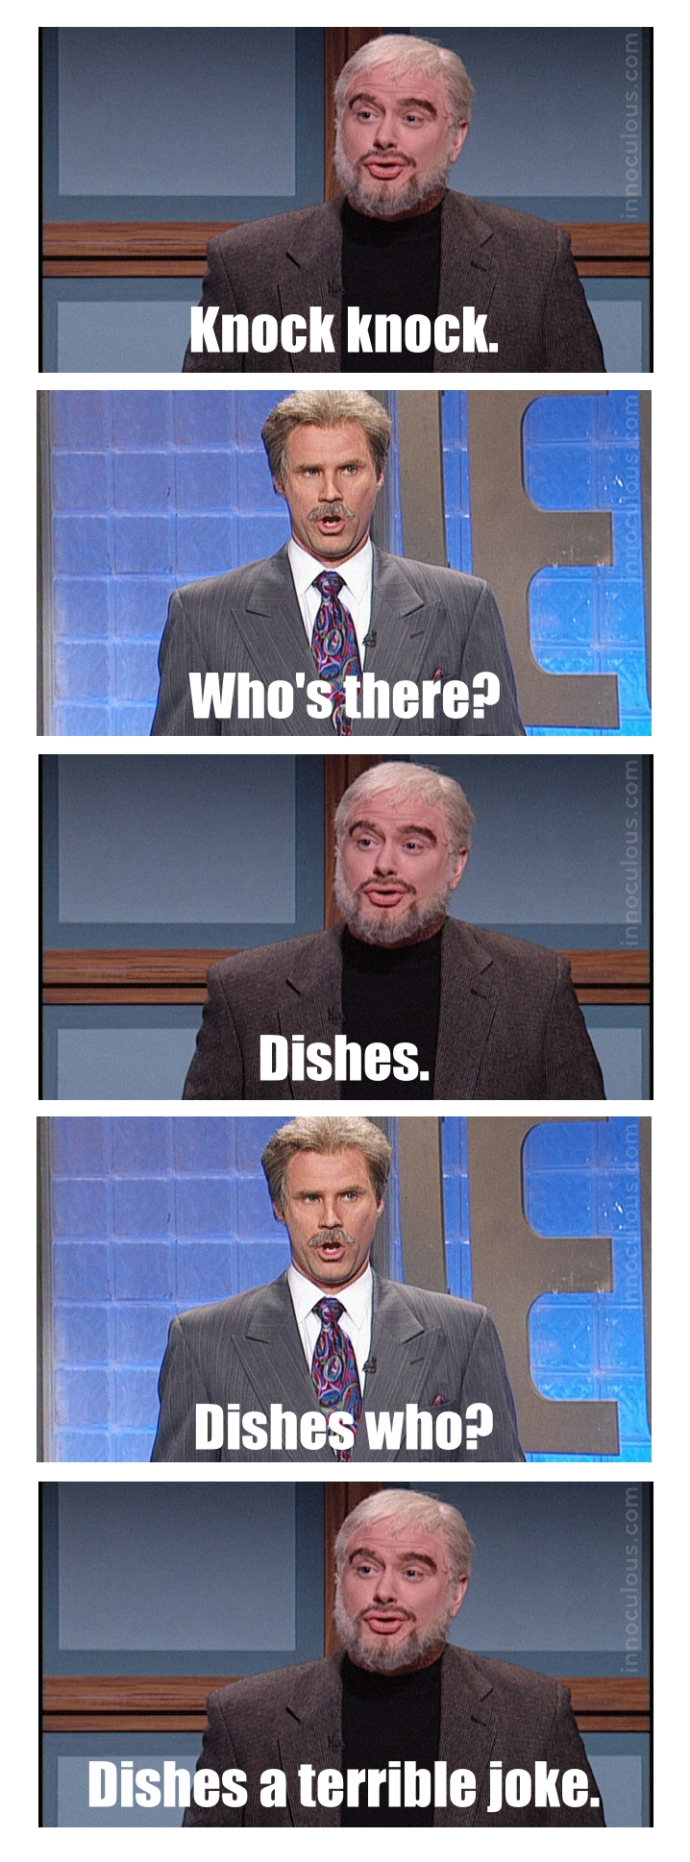 Knock knock. Who's there? Dishes. Dishes who? Dishes a terrible joke.